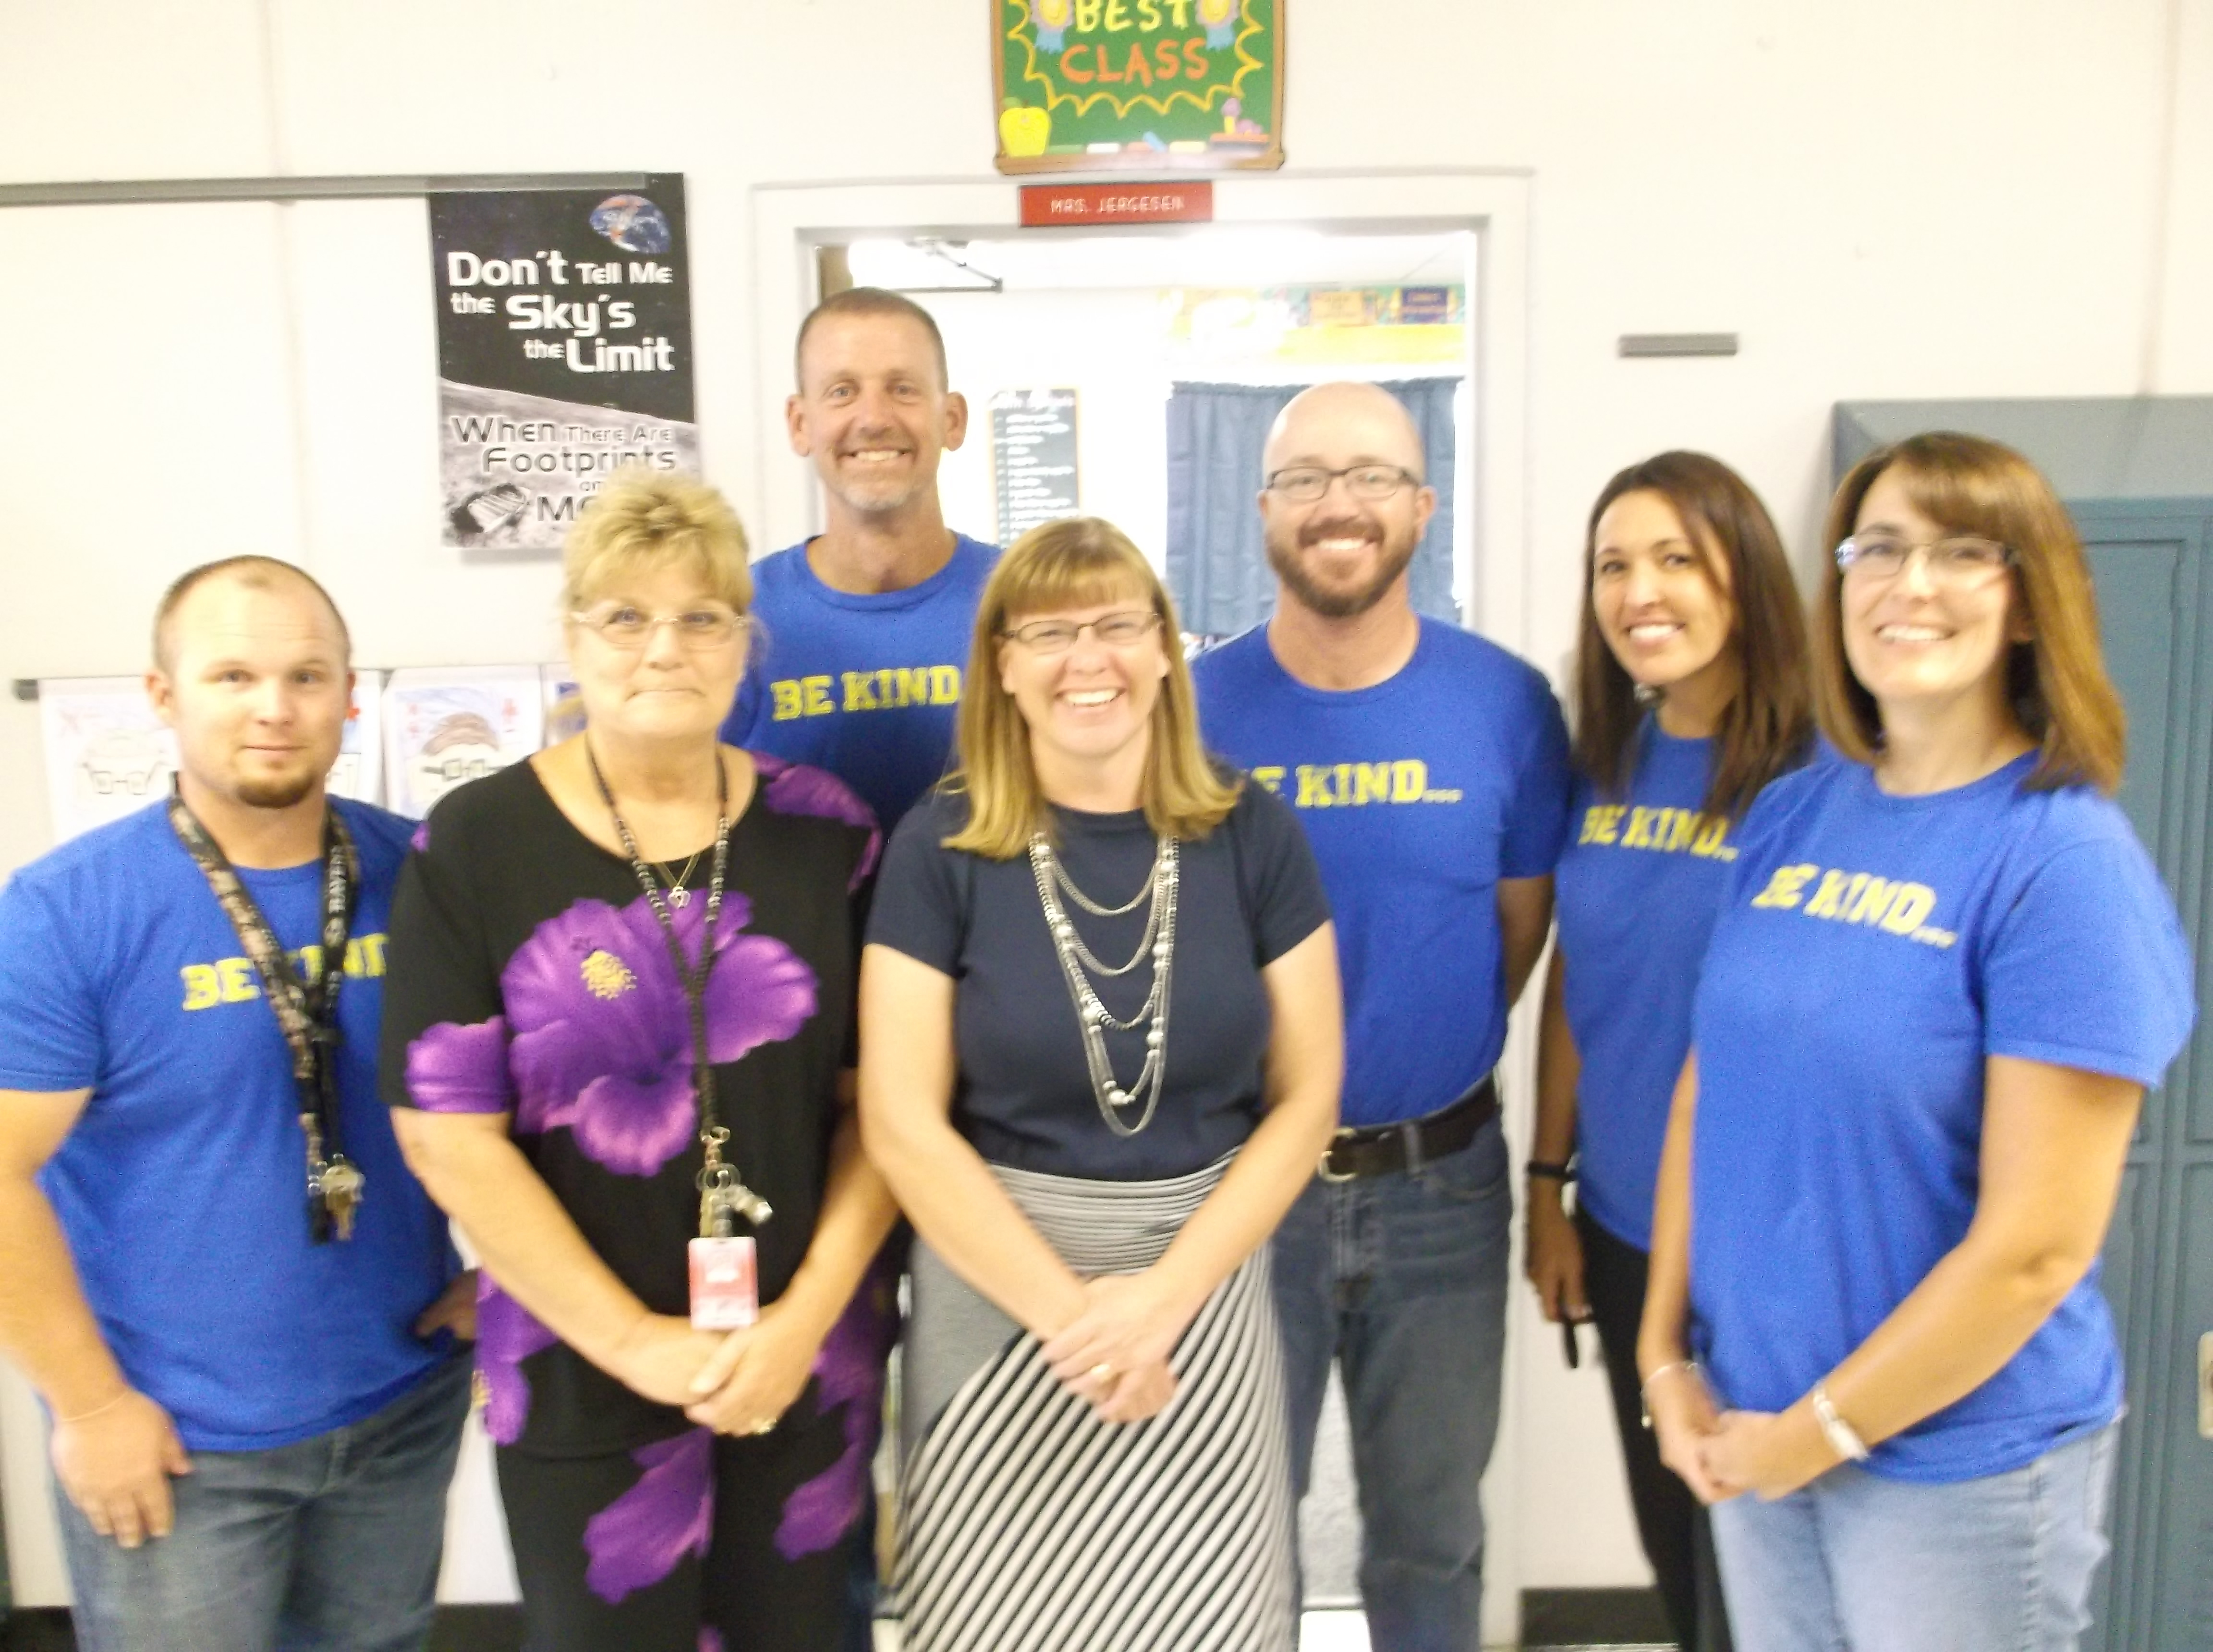 Photo courtesy Fernley Intermediate School Fernley Intermediate School 6th grade teacher Arvella Jargesen is pictured with her Math/Science team. Pictured are from left to right: Scott Gillespie, Lila Wilkins, Dave Burns, Arvella Jergesen, Jessie Weller Stephanie Lotito and Kelly Ward.